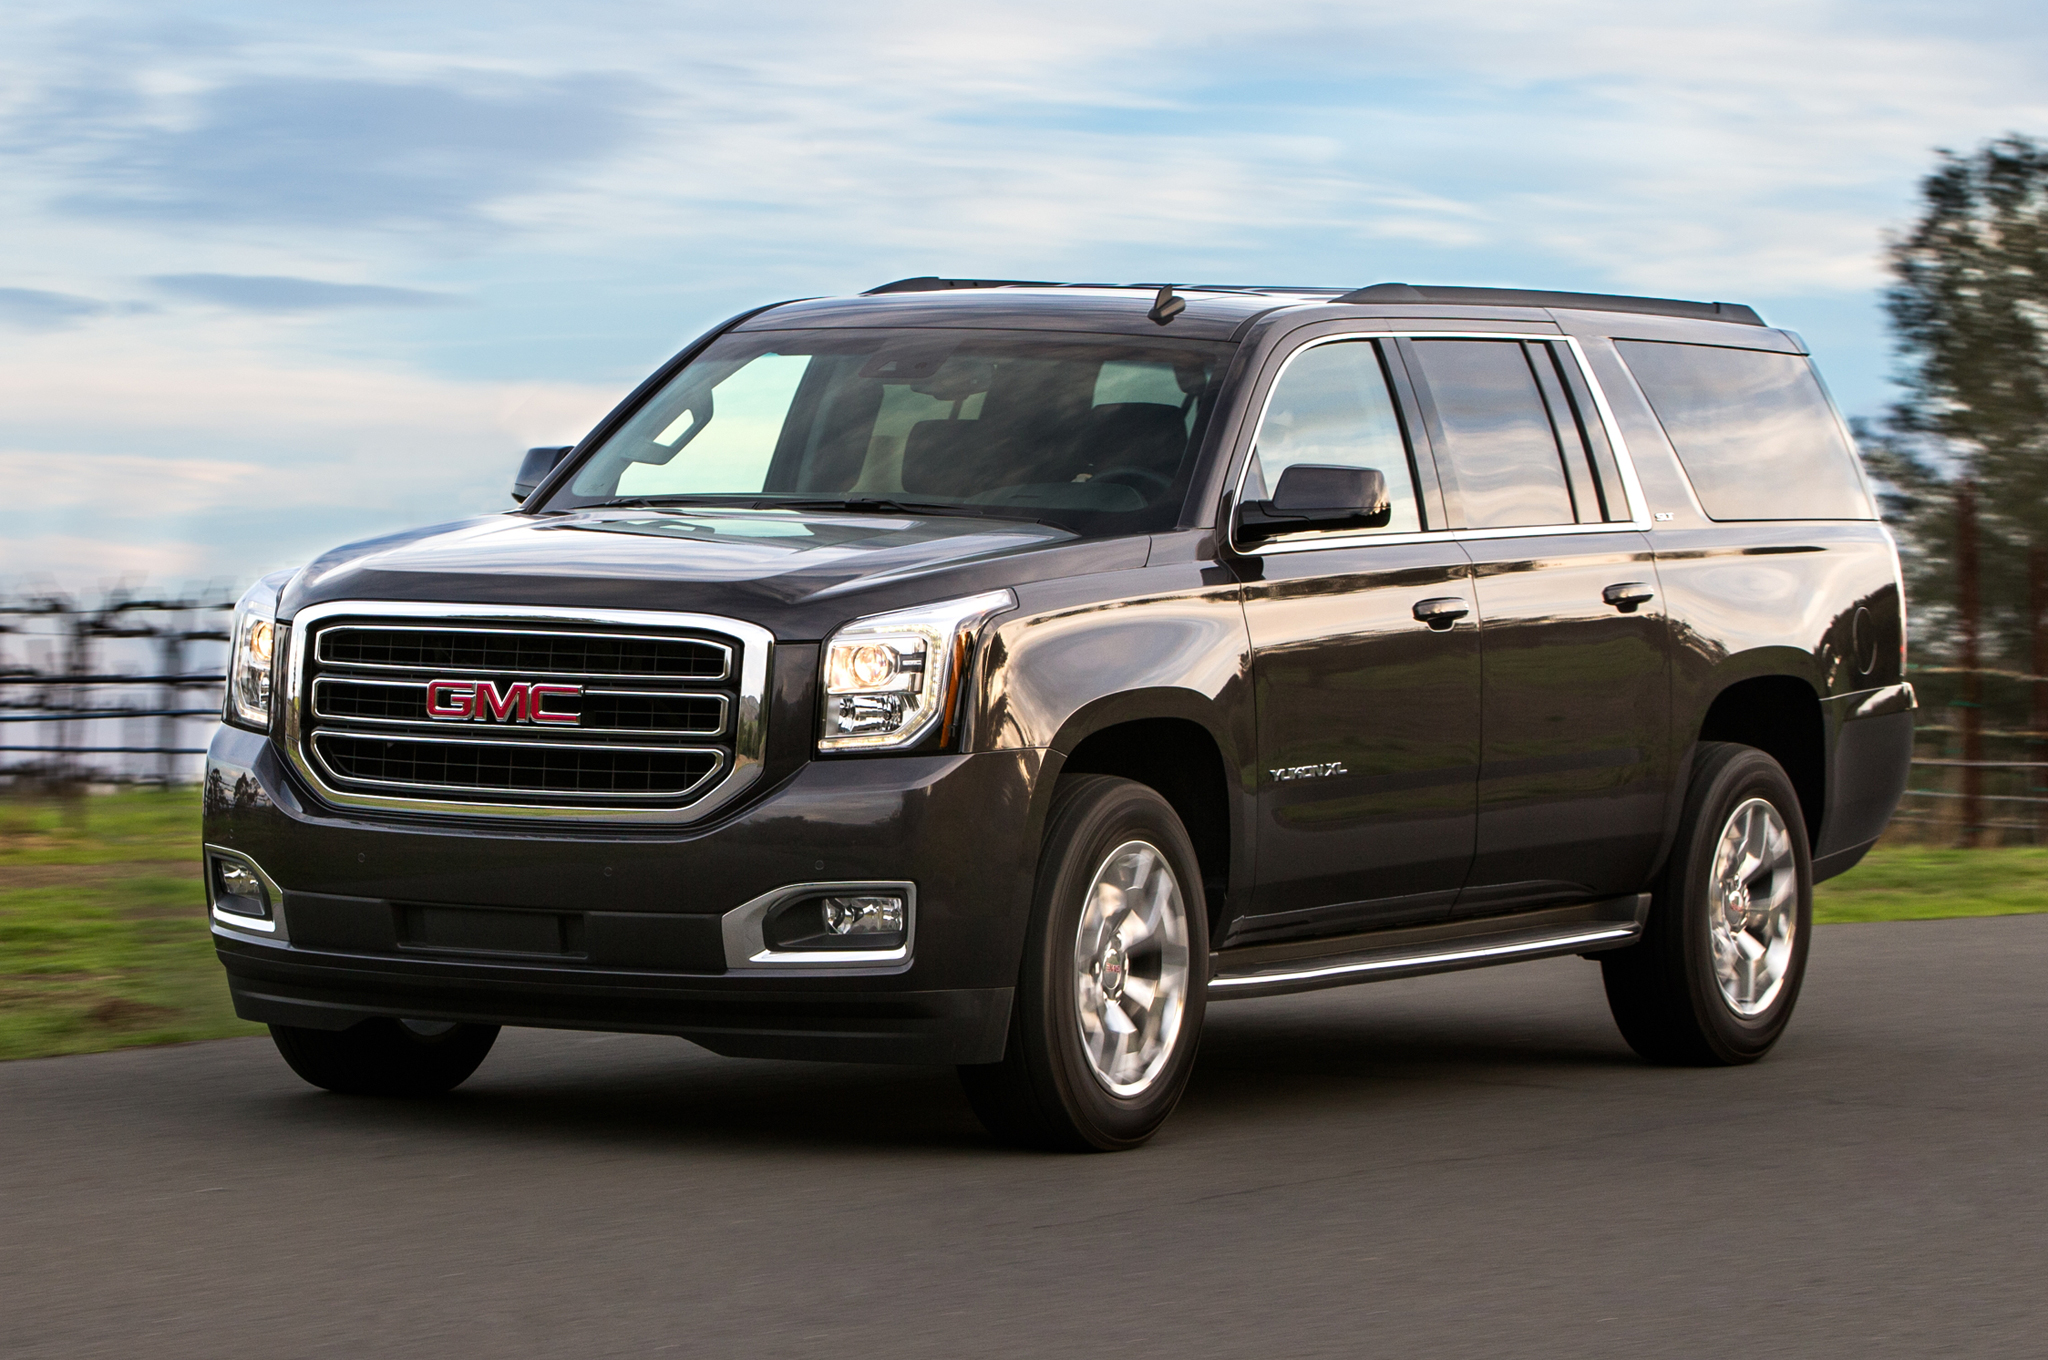 2014 gmc yukon xl information and photos momentcar. Black Bedroom Furniture Sets. Home Design Ideas